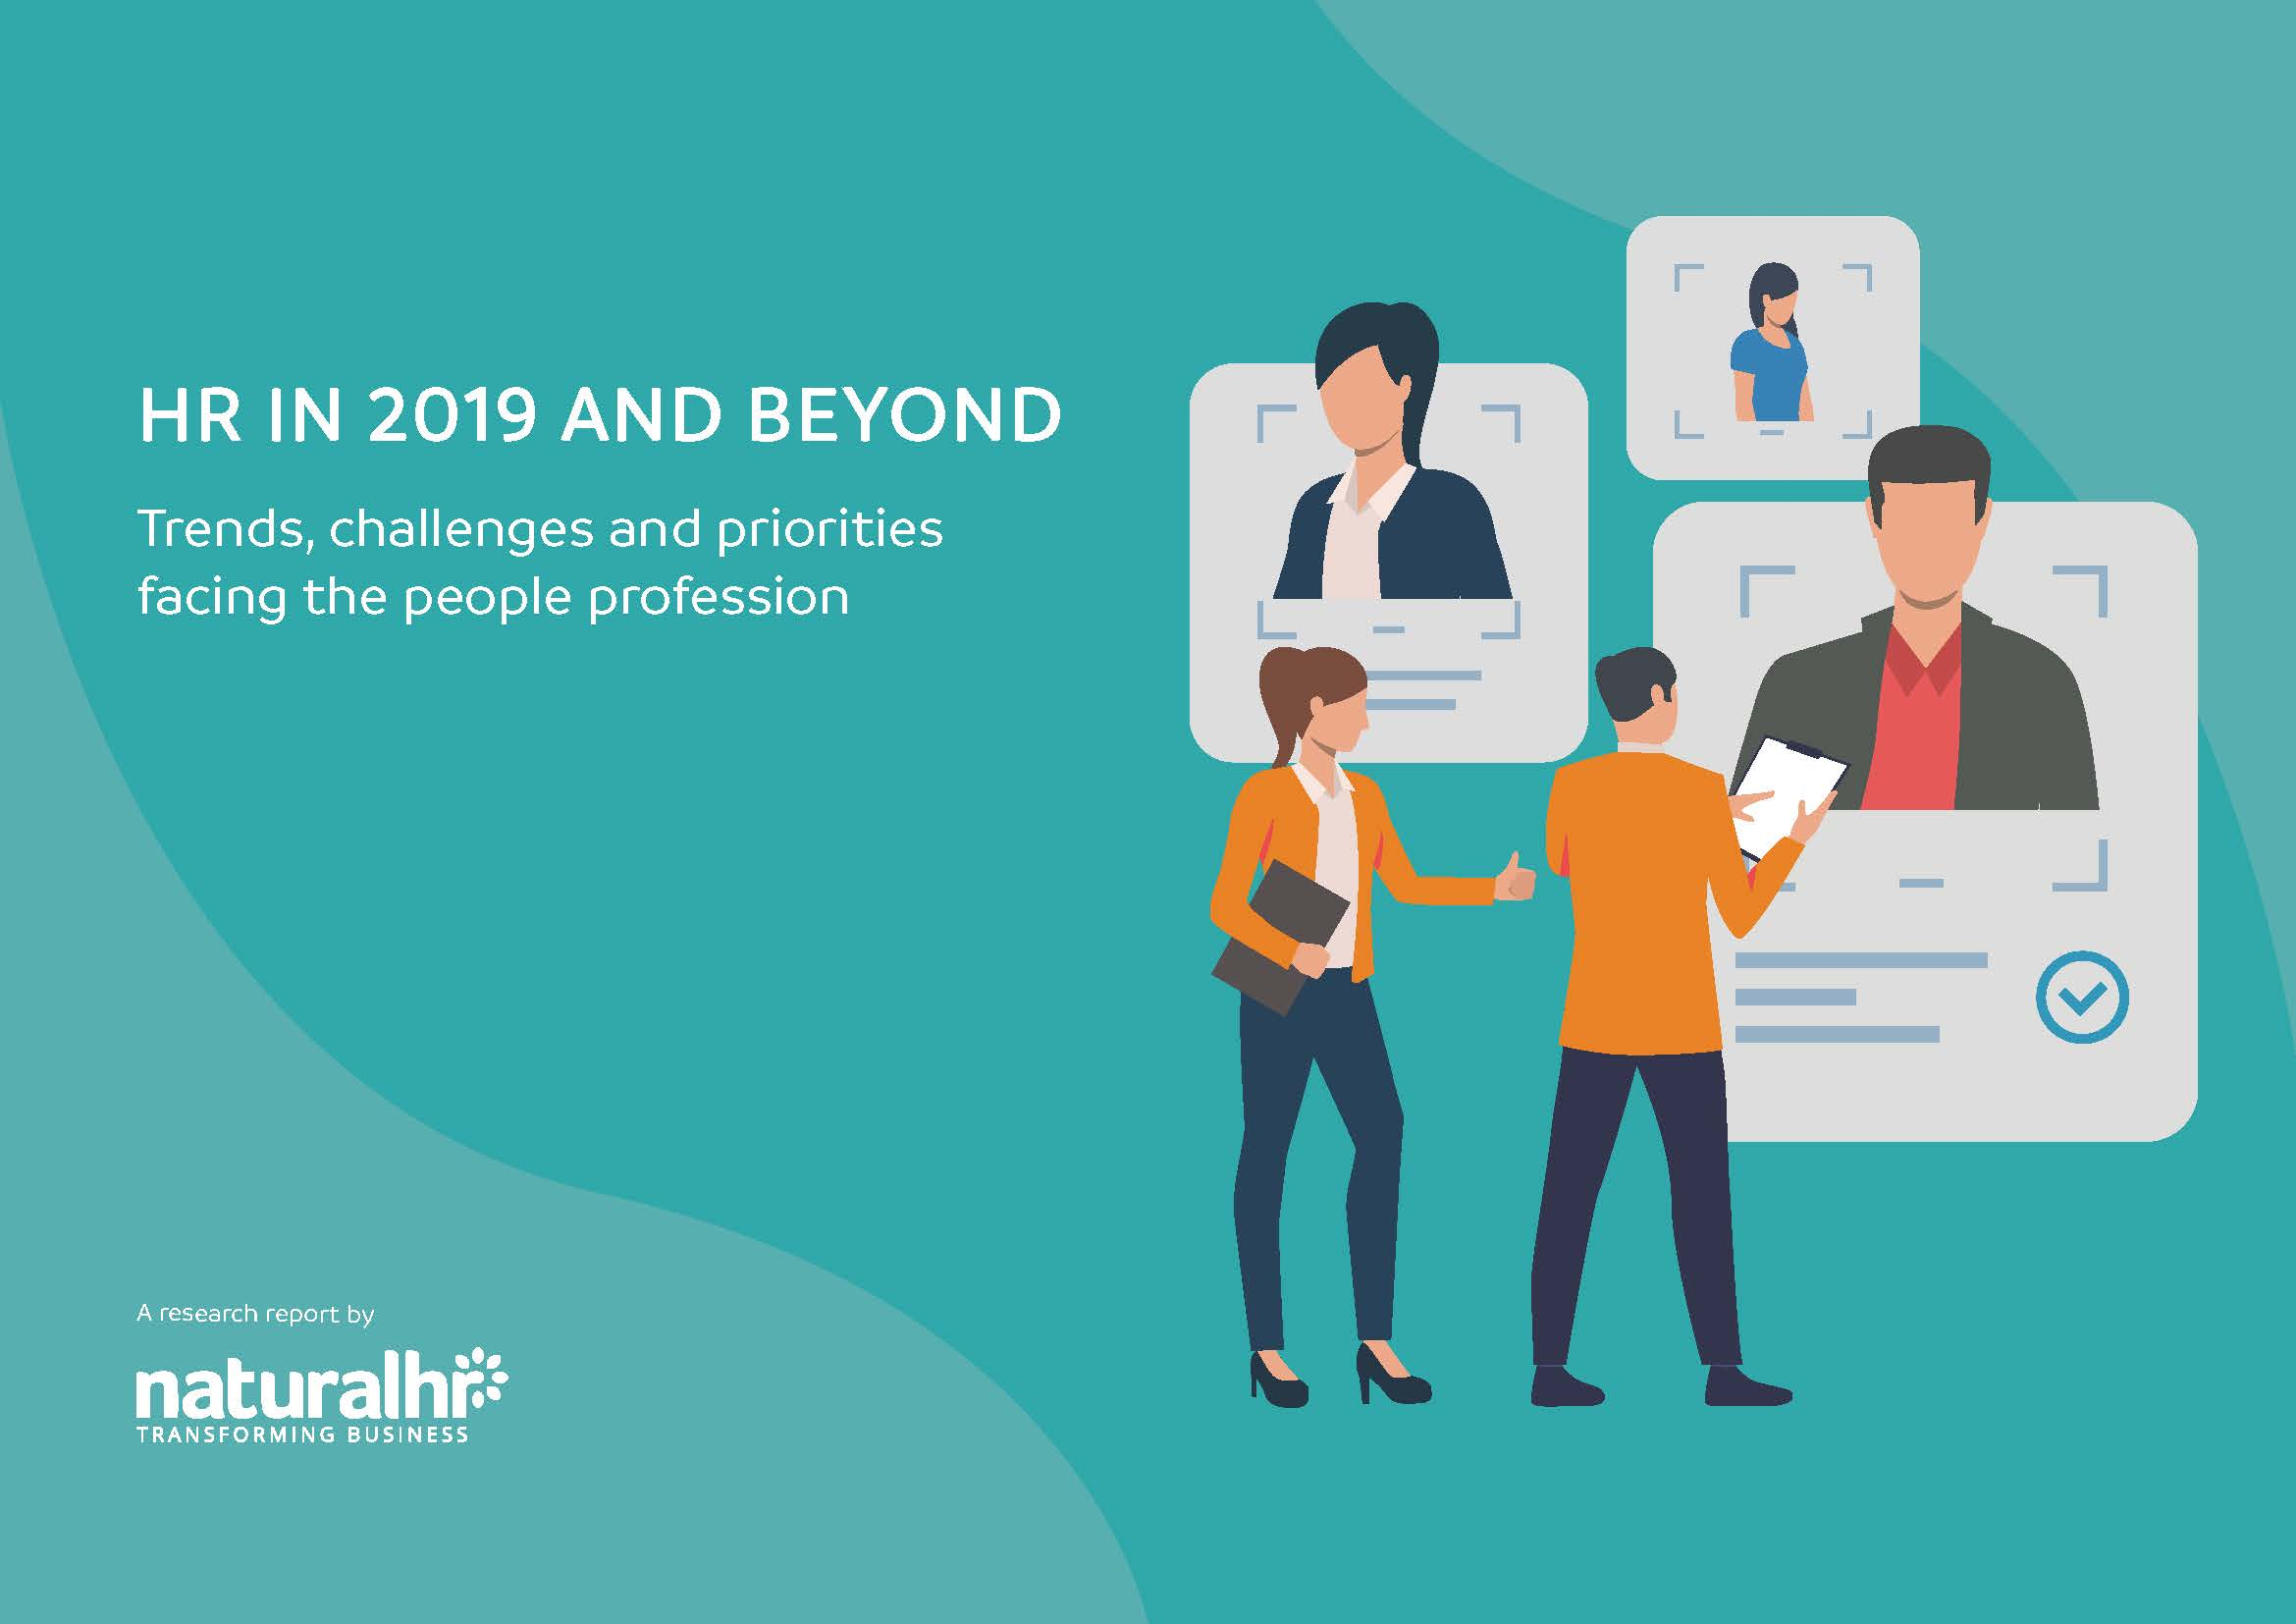 hr trends and challenges